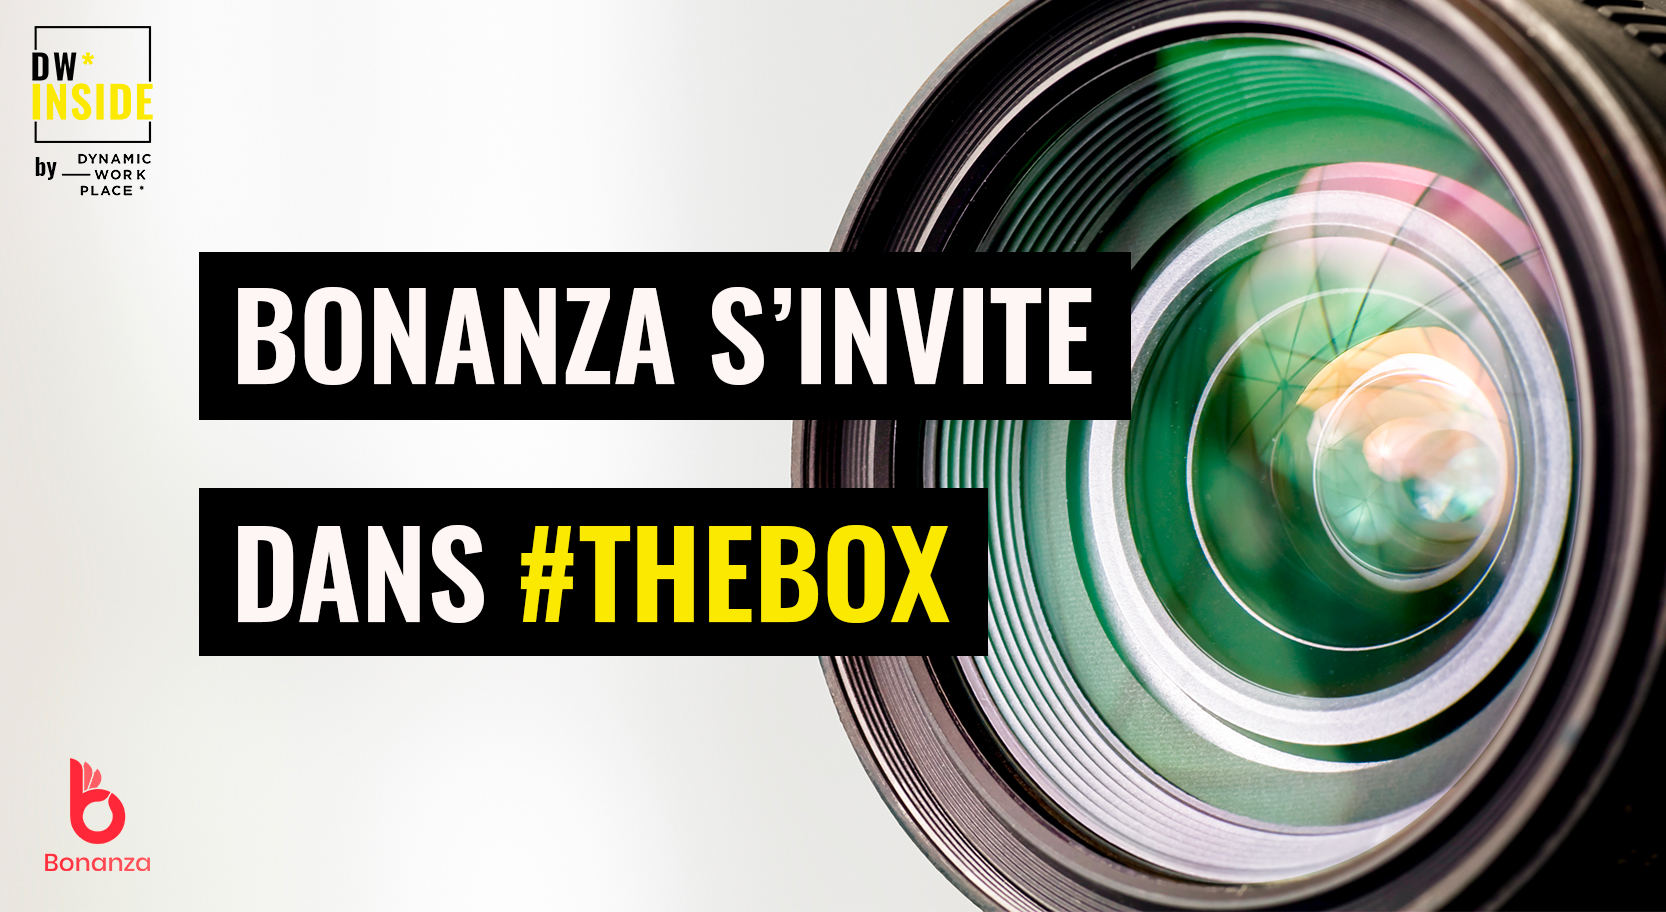 Bonanza s'invite dans #TheBox by DW* Inside